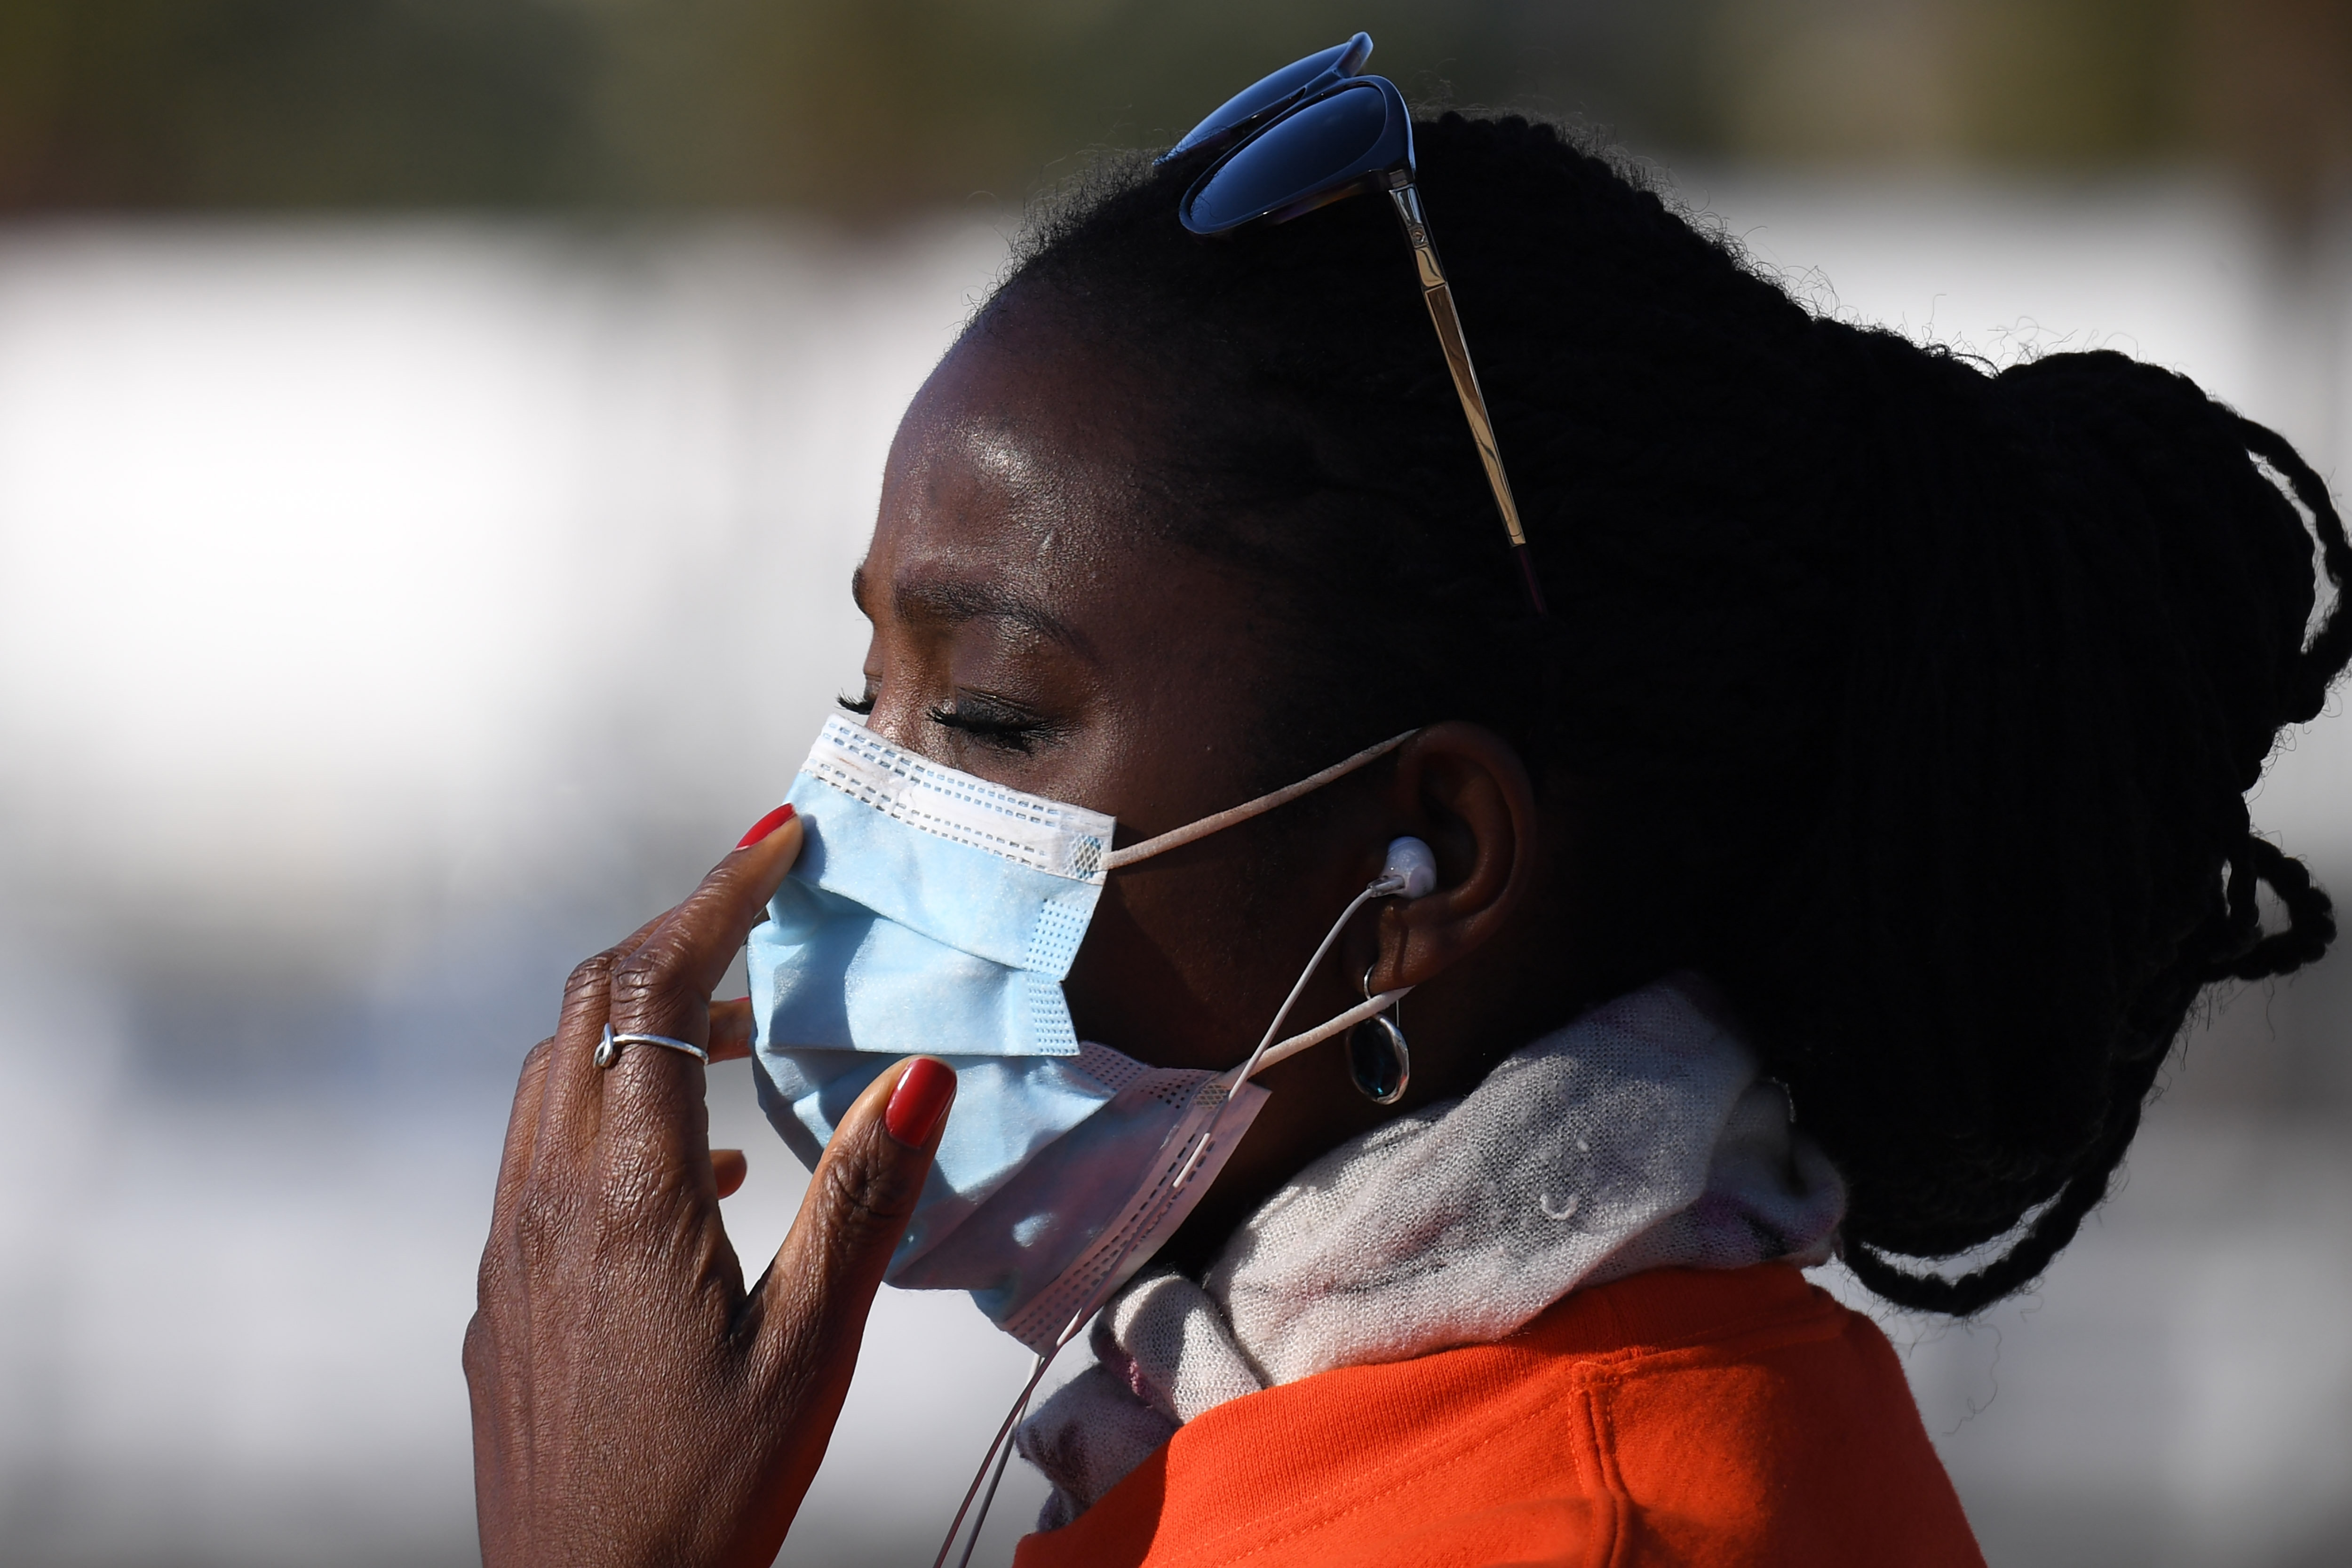 A close up portrait of black woman with braids, sunglasses, and a blue surgical mask. She adjusts the mask slightly, her eyes closed.